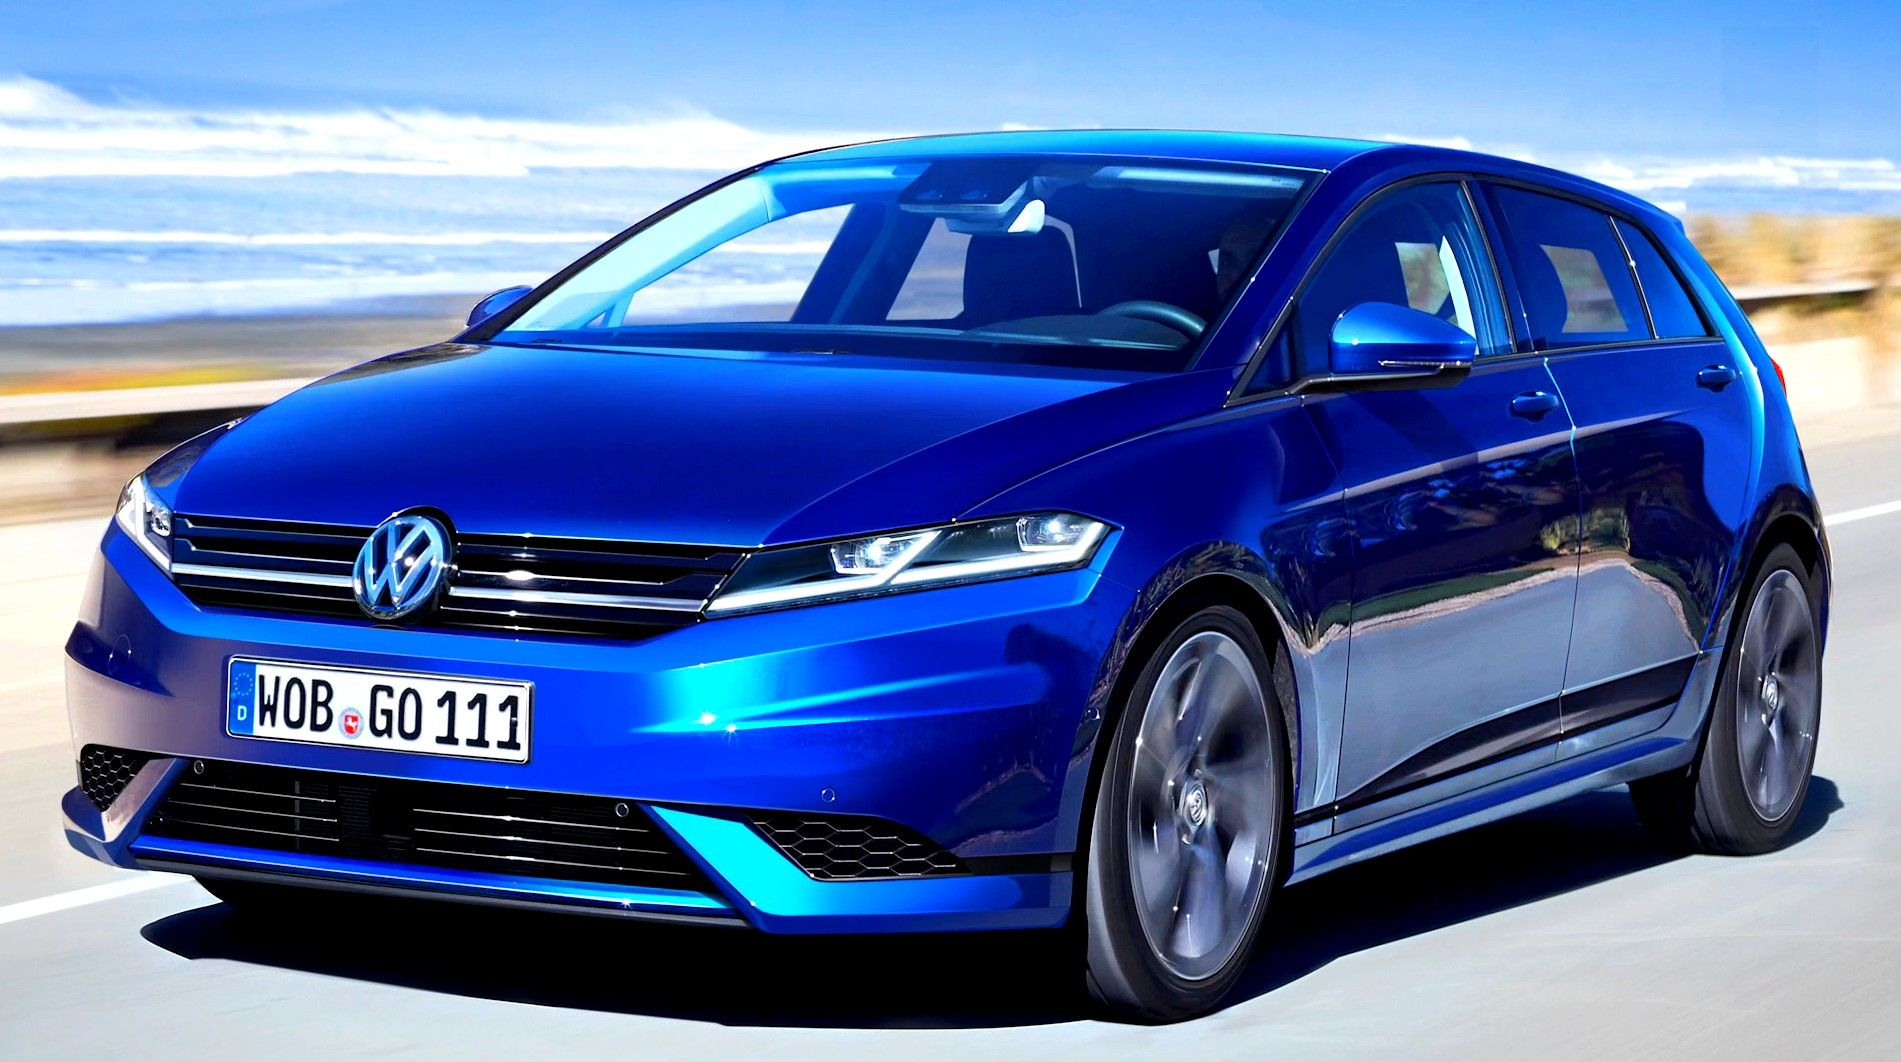 2018 Volkswagen Golf 8 New Pictures Revealed With Images